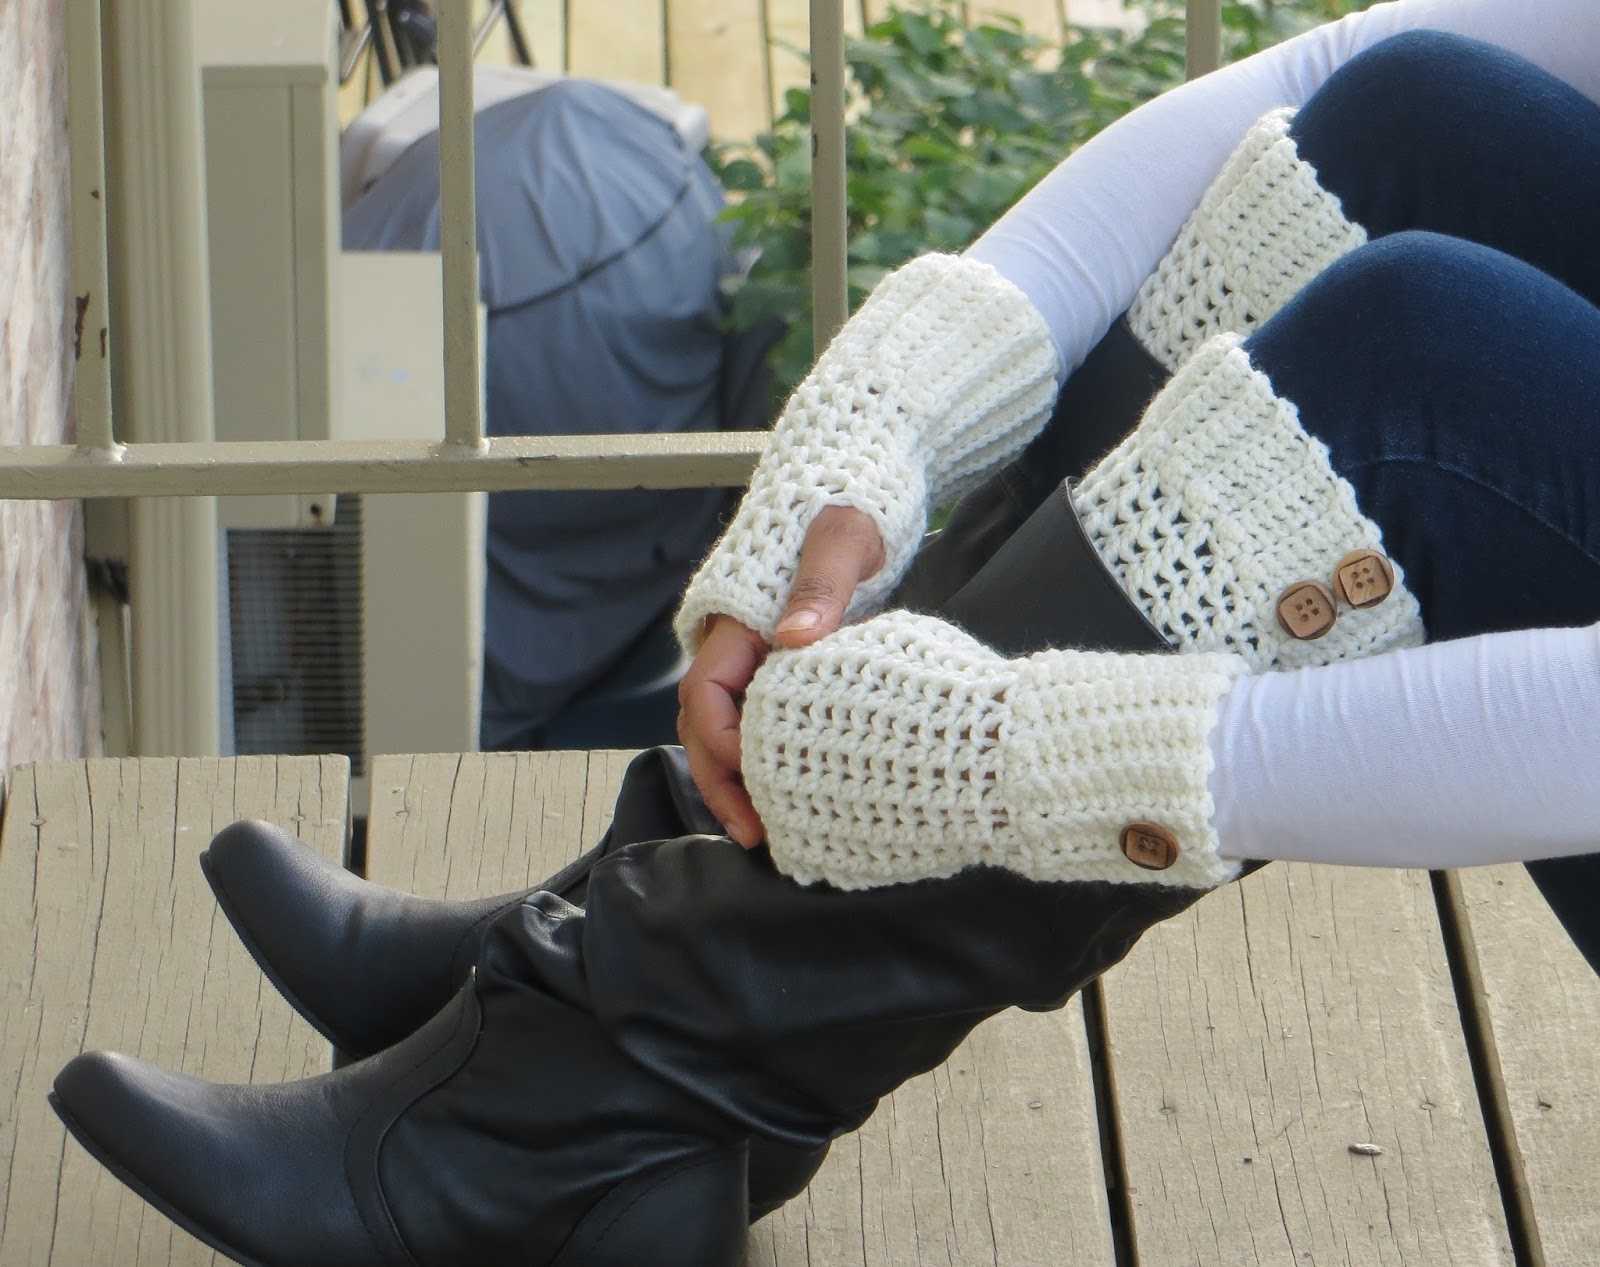 Free Crochet Patterns For Boot Cuffs With Buttons : Crochet Dreamz: Brooklyn Boot Cuffs, Free Crochet Pattern